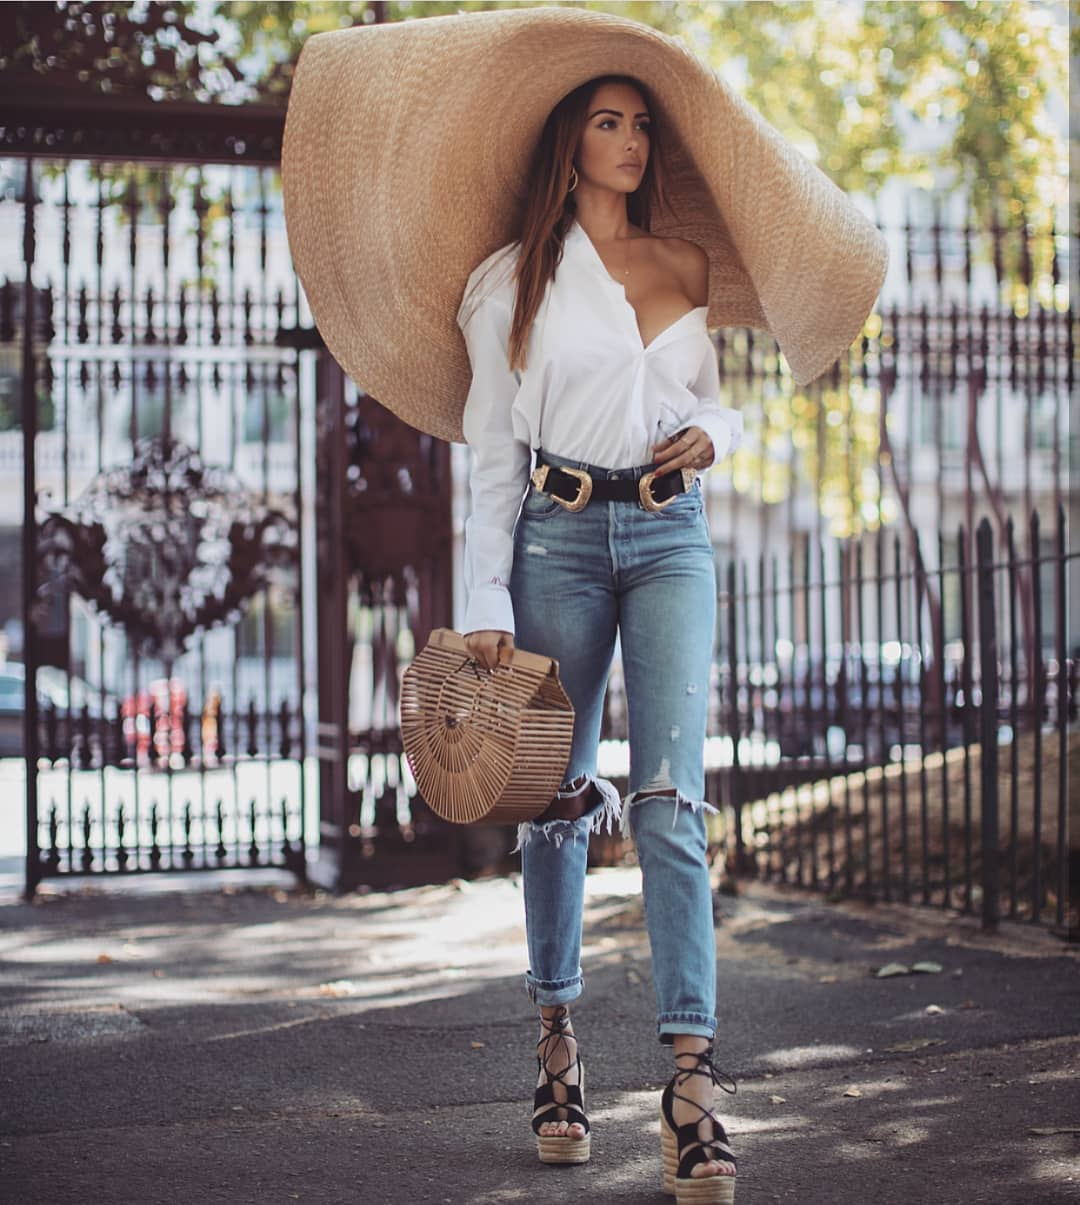 Can I Wear Large Sunhat With White Shirt And Ripped Jeans This Summer 2019